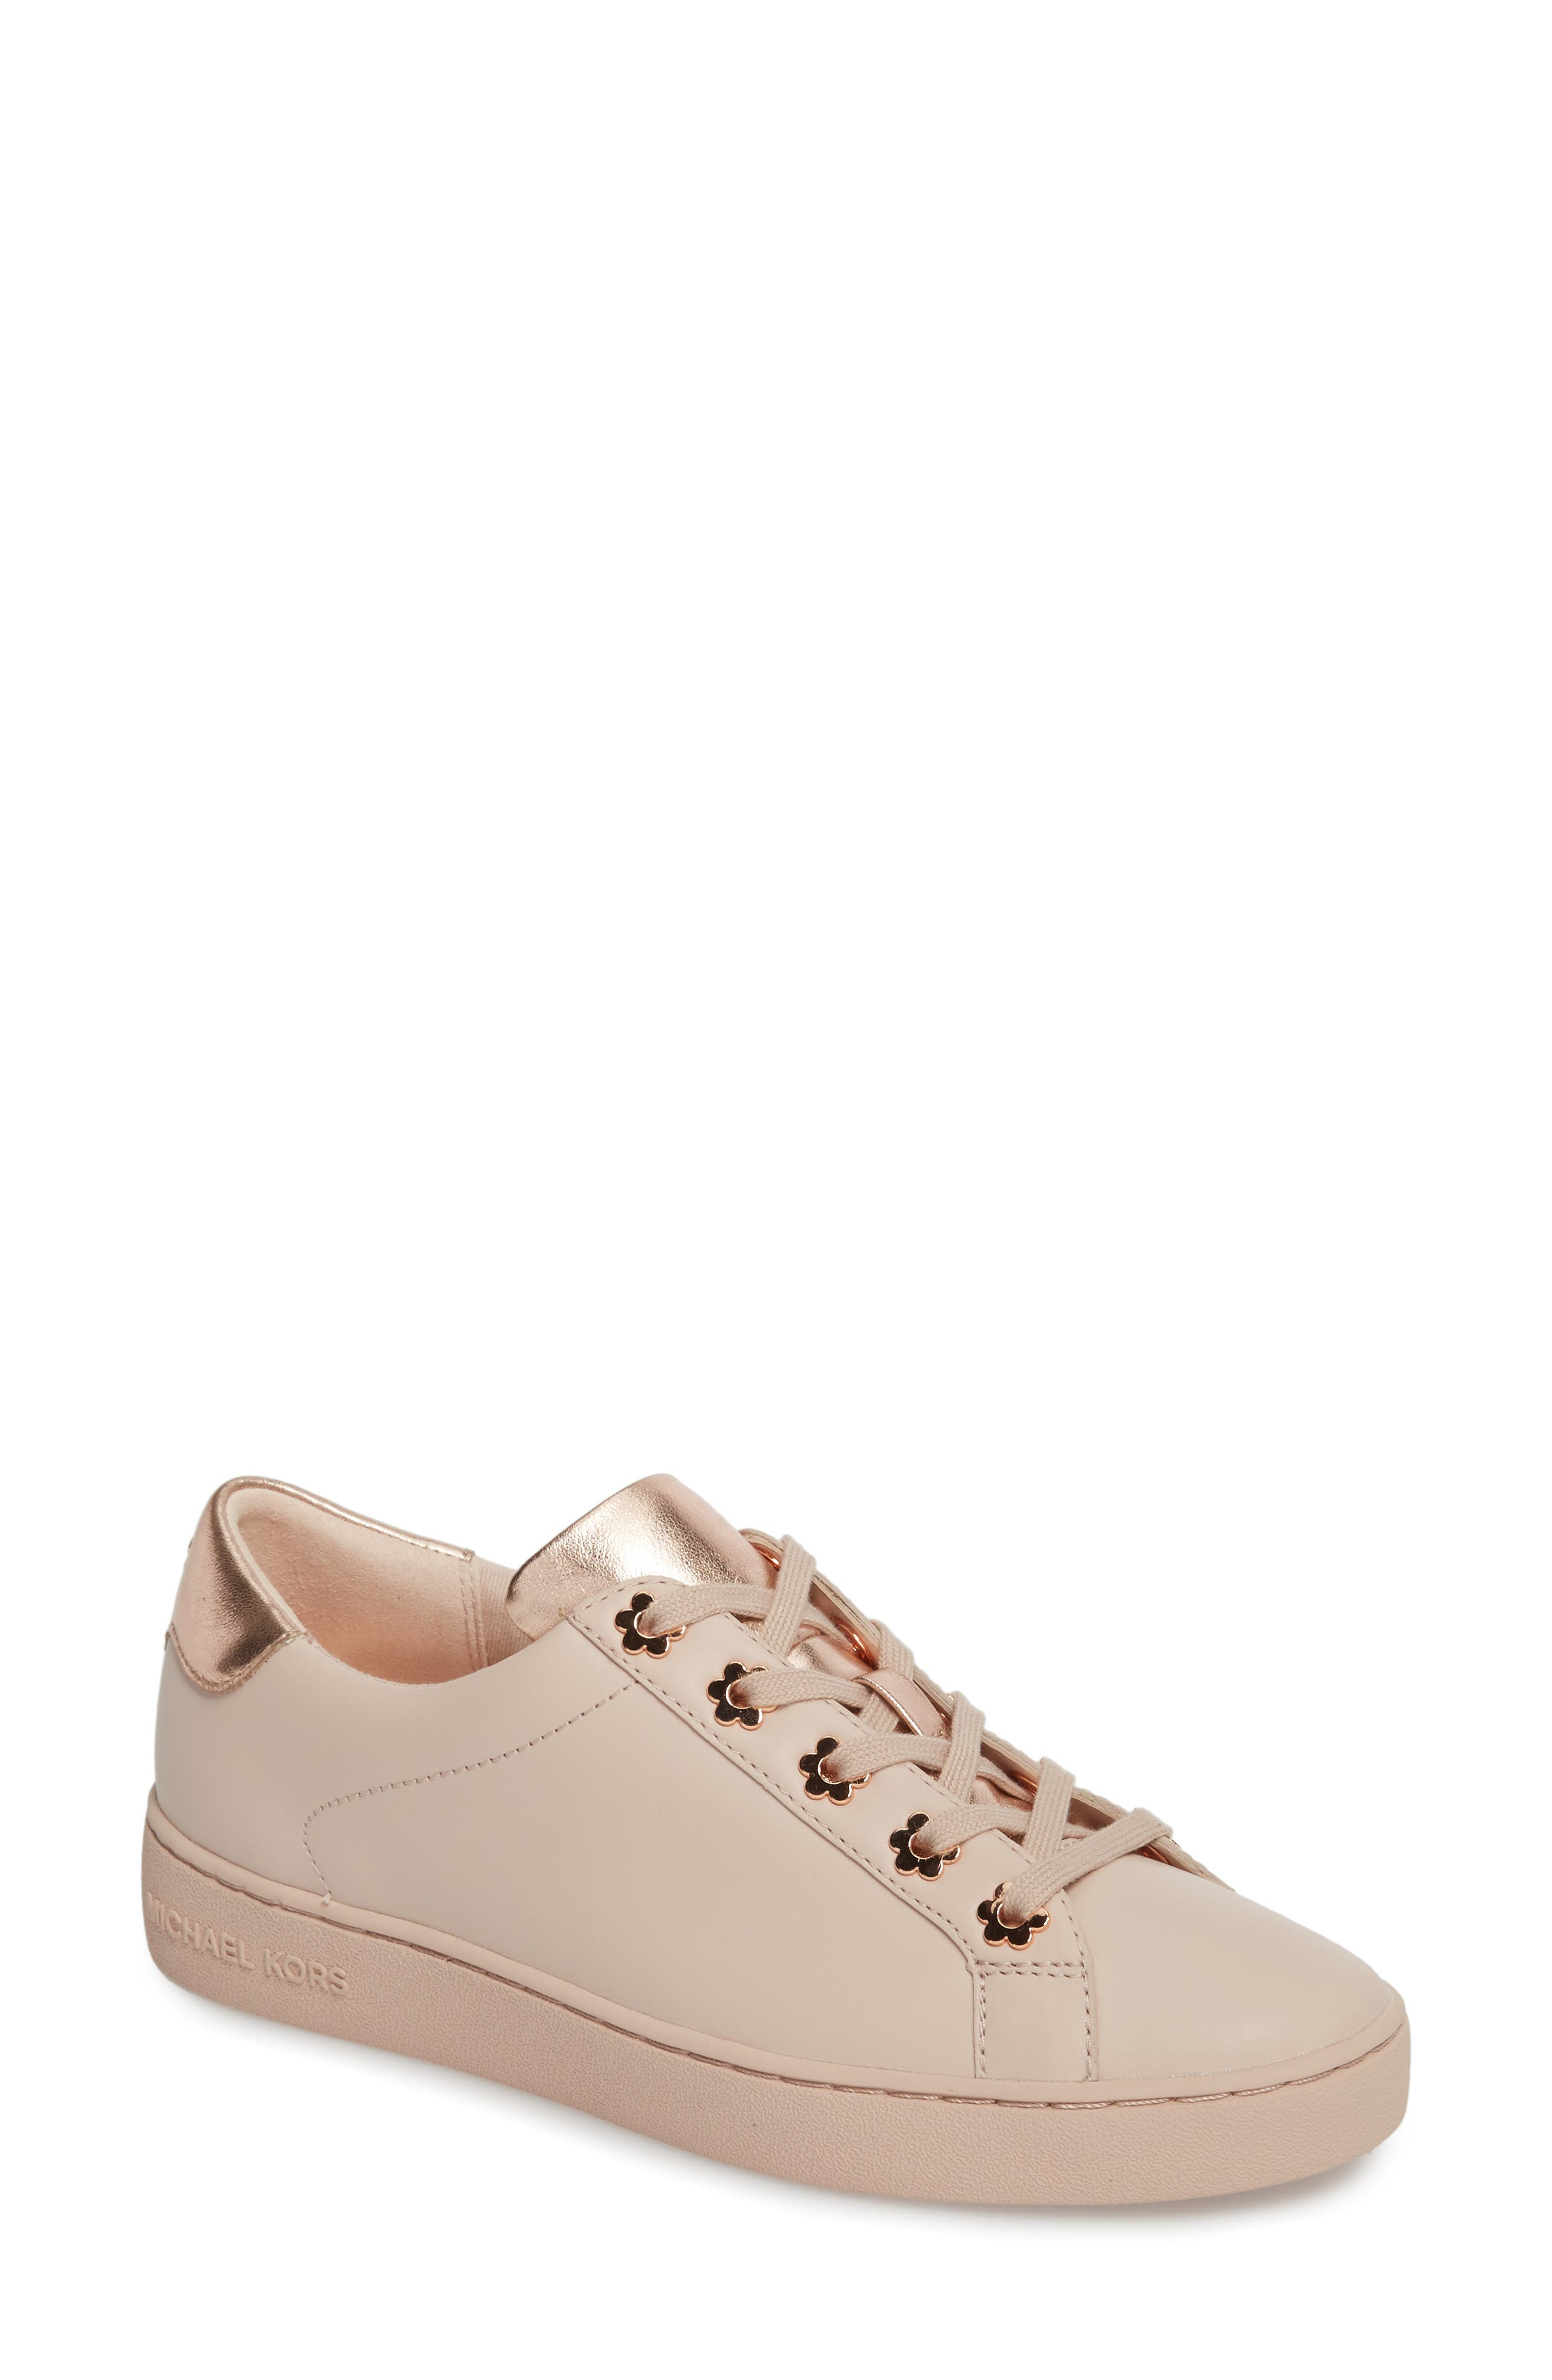 Irving Sneaker,                             Main thumbnail 6, color,